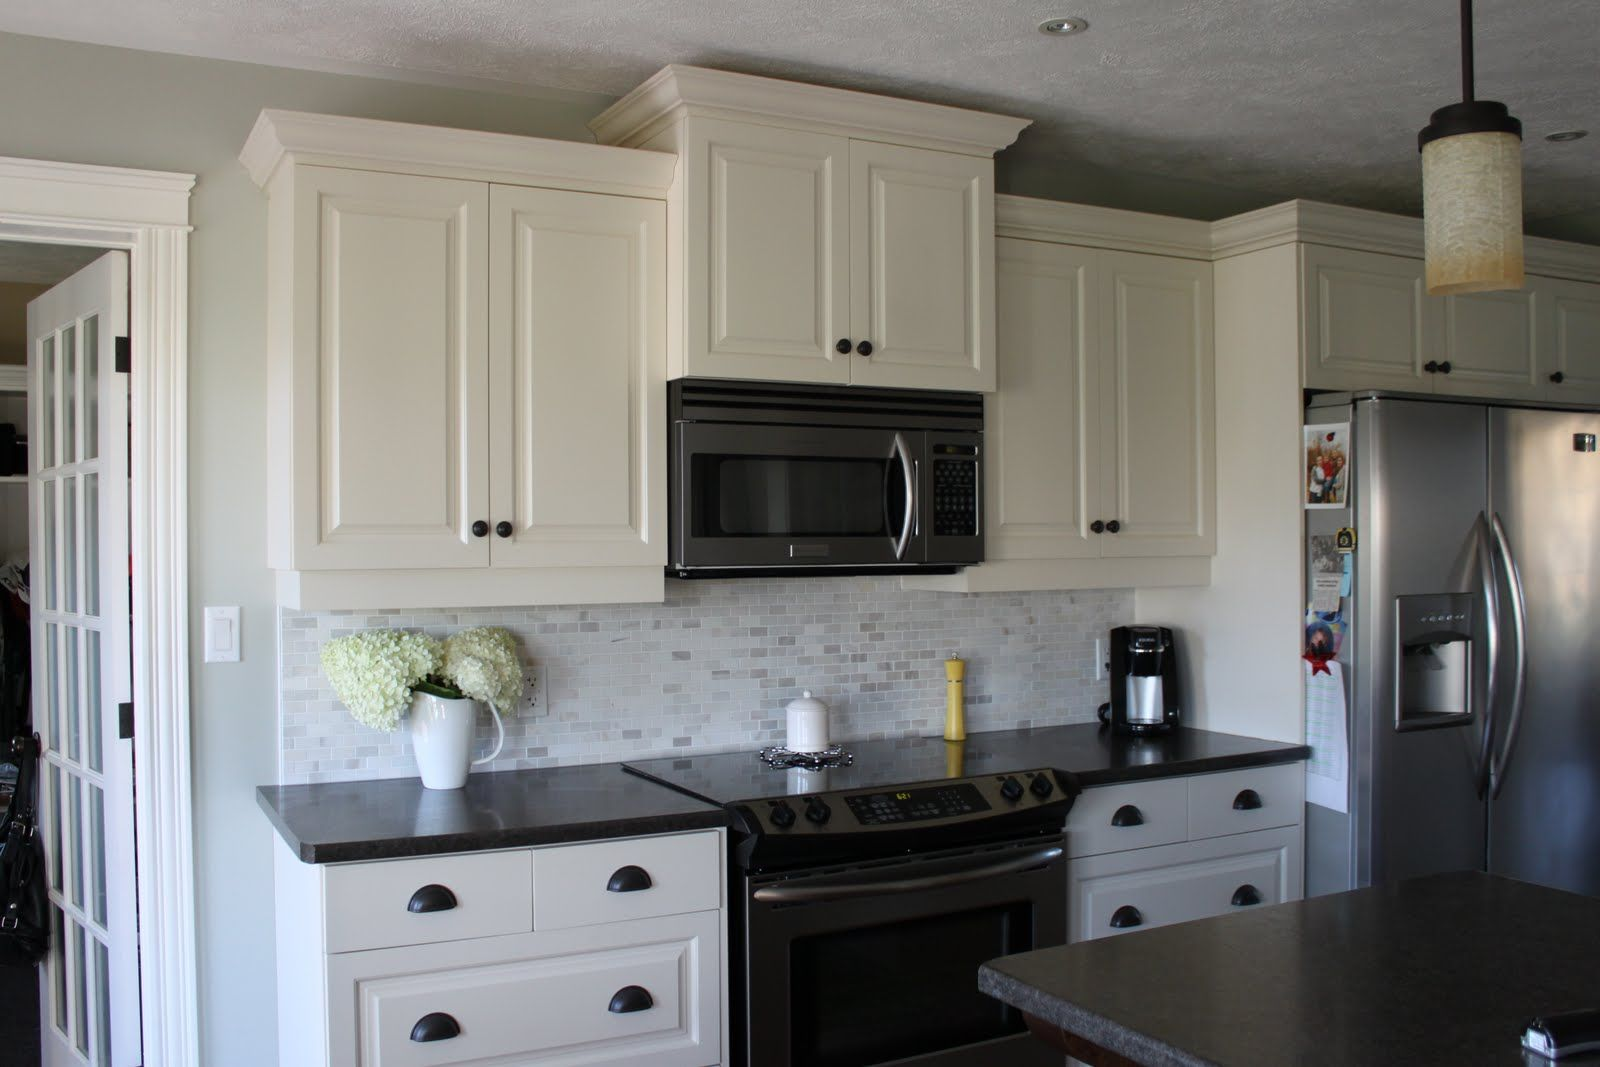 Kitchen Backsplash Ideas With White Cabinets White Cabinets With Gray Backsplash Kitchen Ideas Kitchen